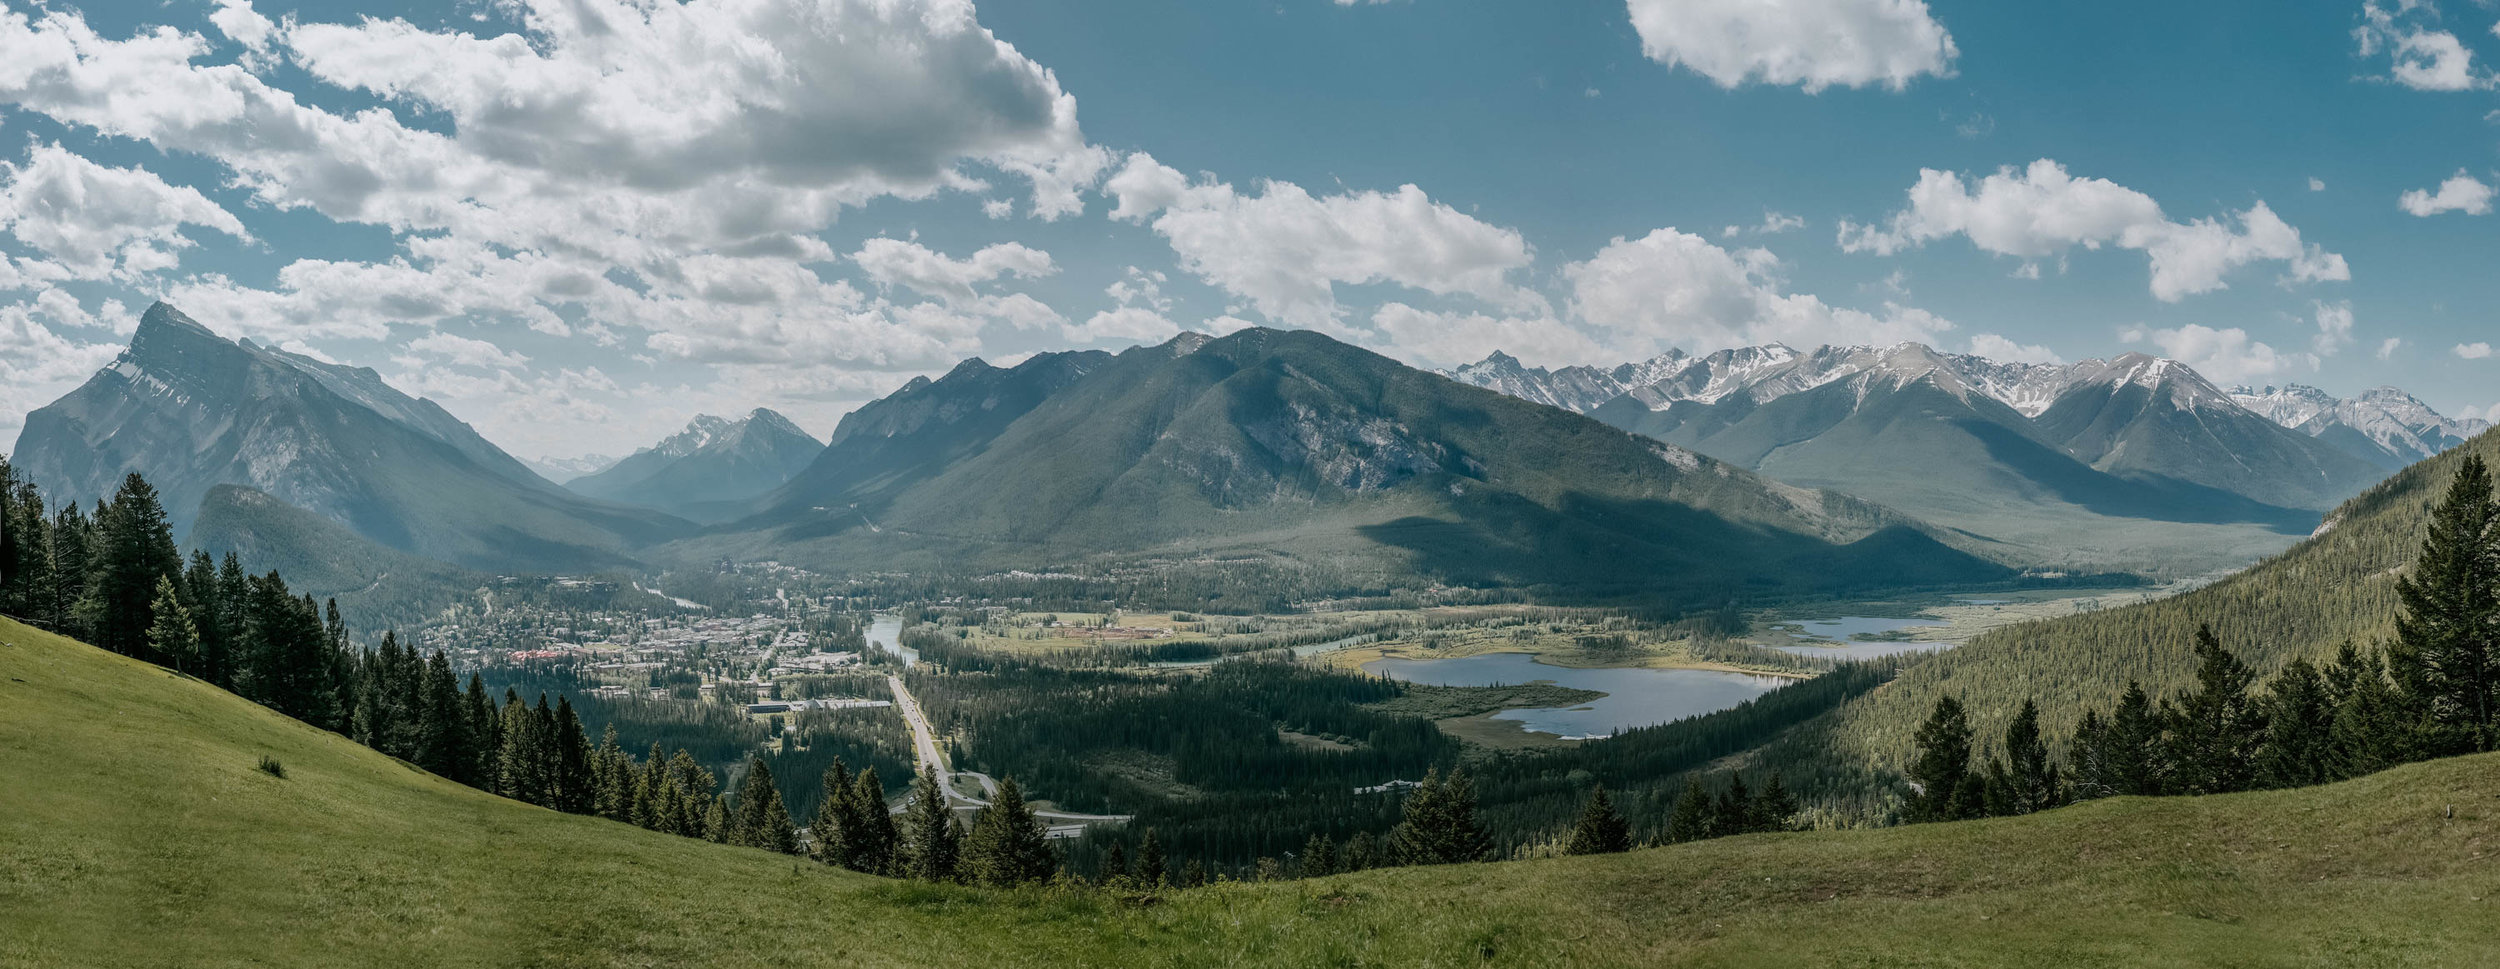 canada canadian best places tourism outdoor Mount Norquay Viewpoint  The Green Spot  tourist hike travel guide explore  banff jasper  alberta lake louise moraine